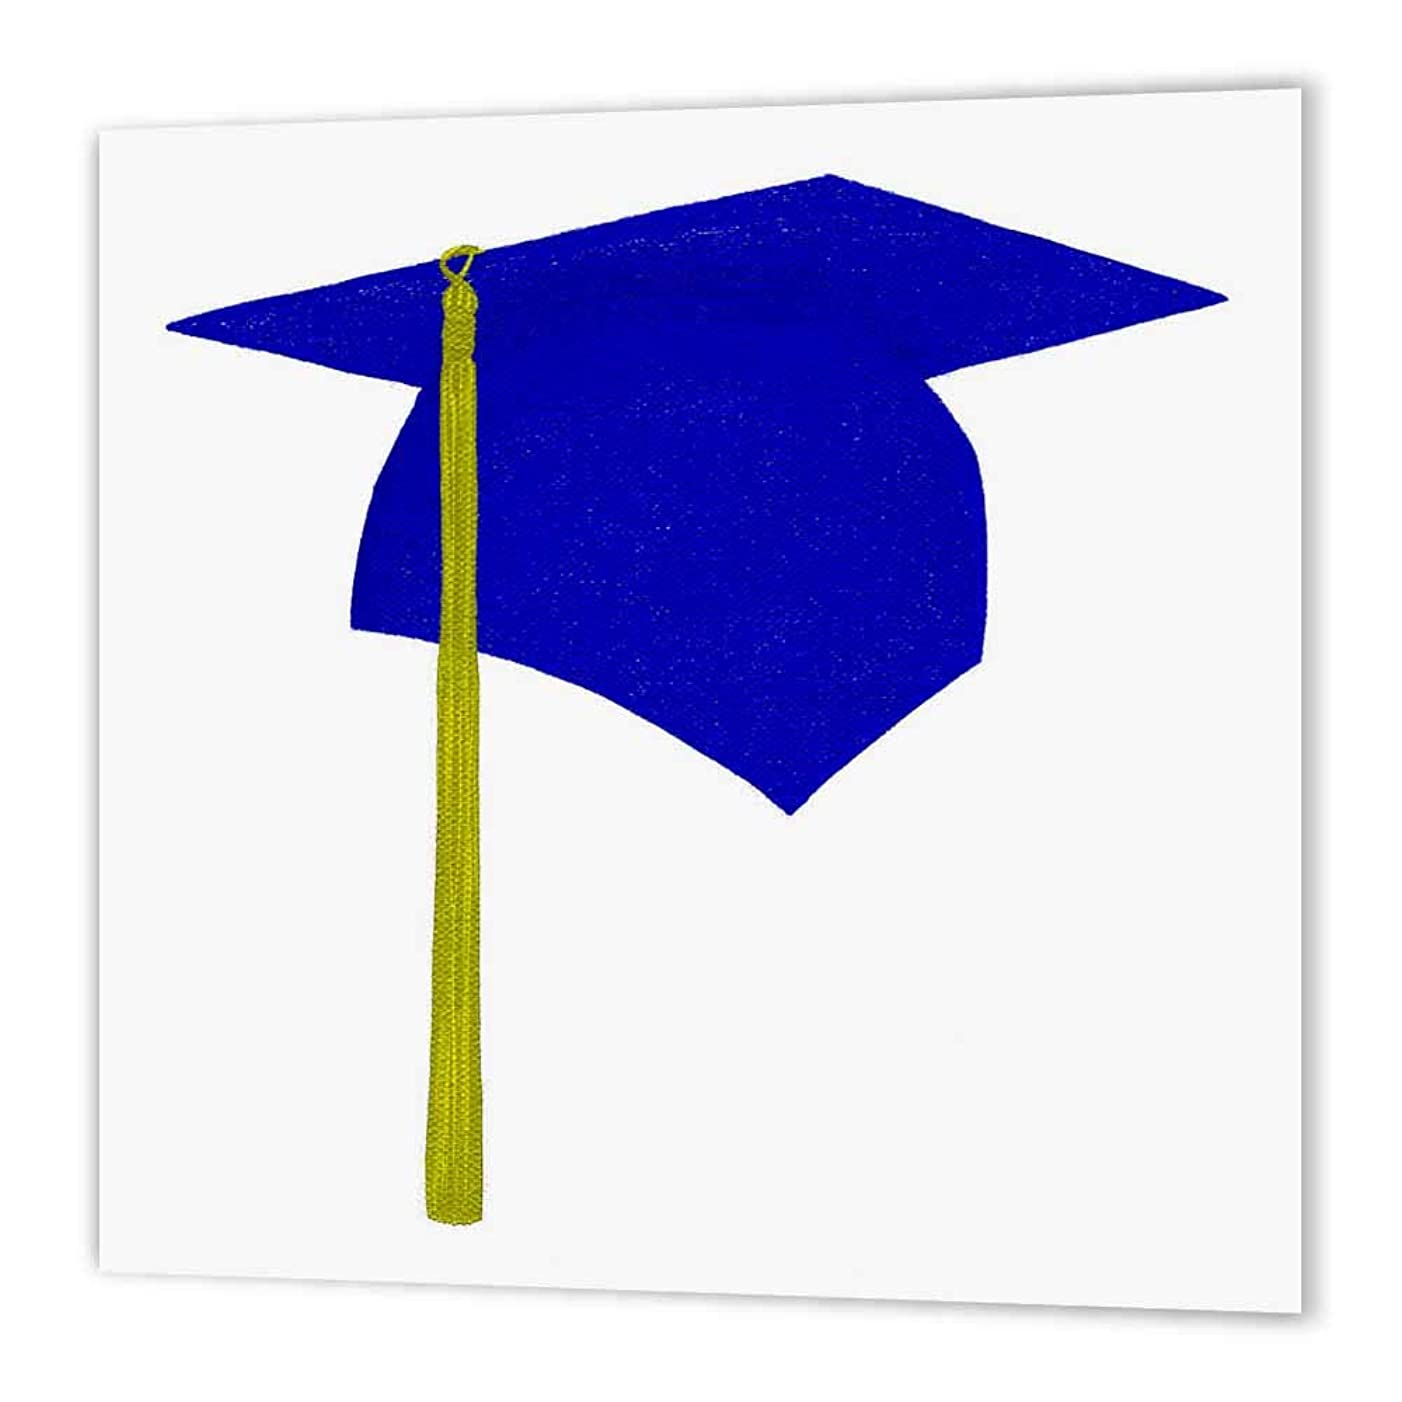 3dRose ht_17544_1 Blue Cap & Yellow Tassel Graduation Iron on Heat Transfer Paper for White Material, 8 by 8